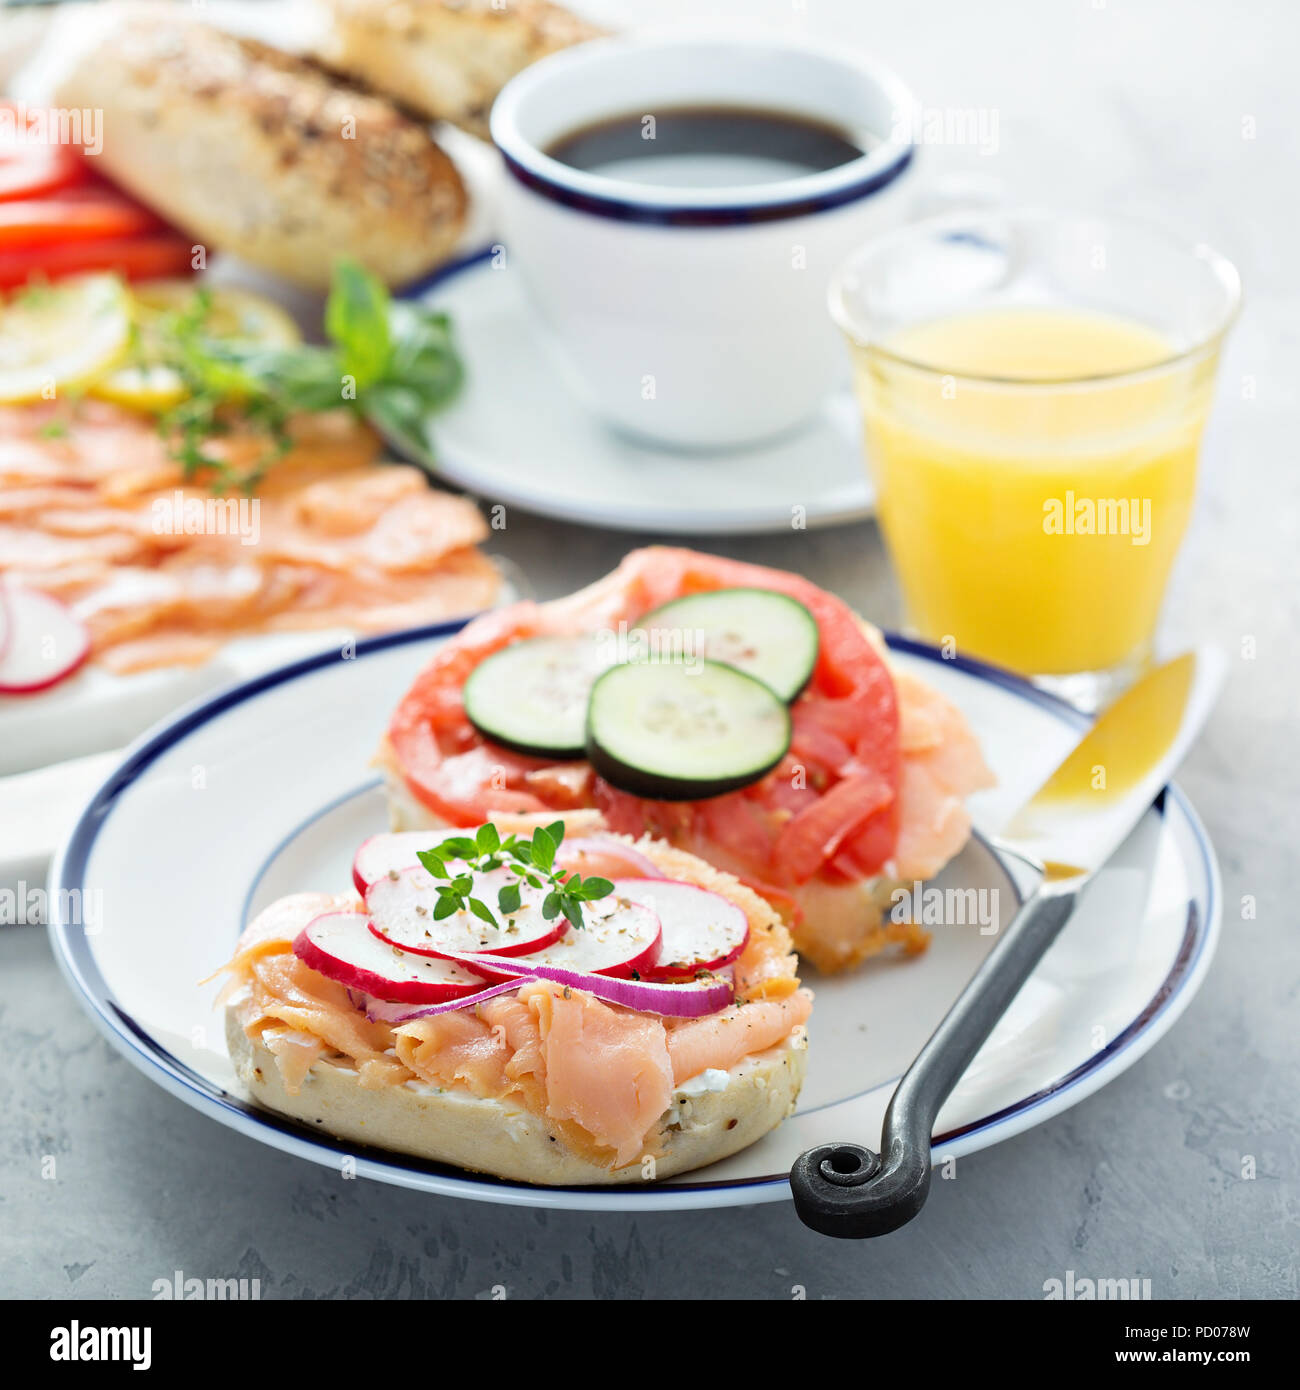 Bagels and lox platter - Stock Image